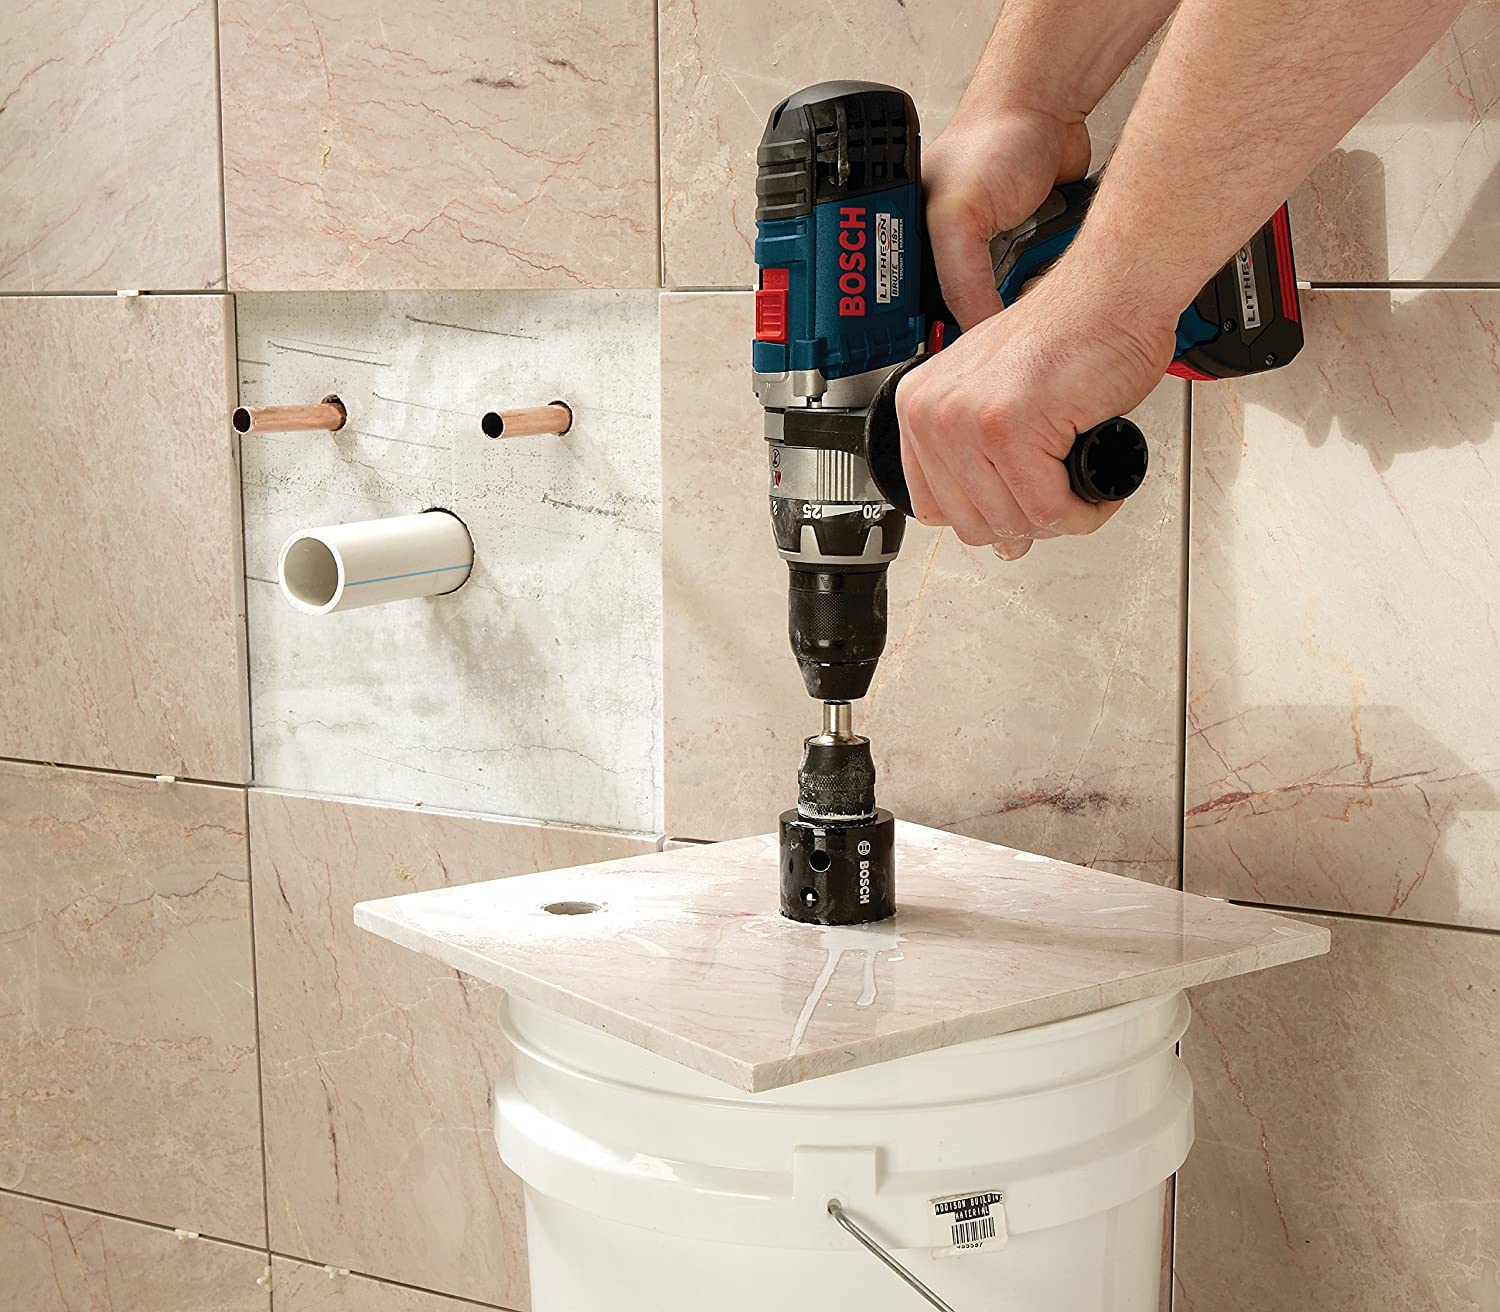 How to Cut a Circle in Tile: Bosch HDG11